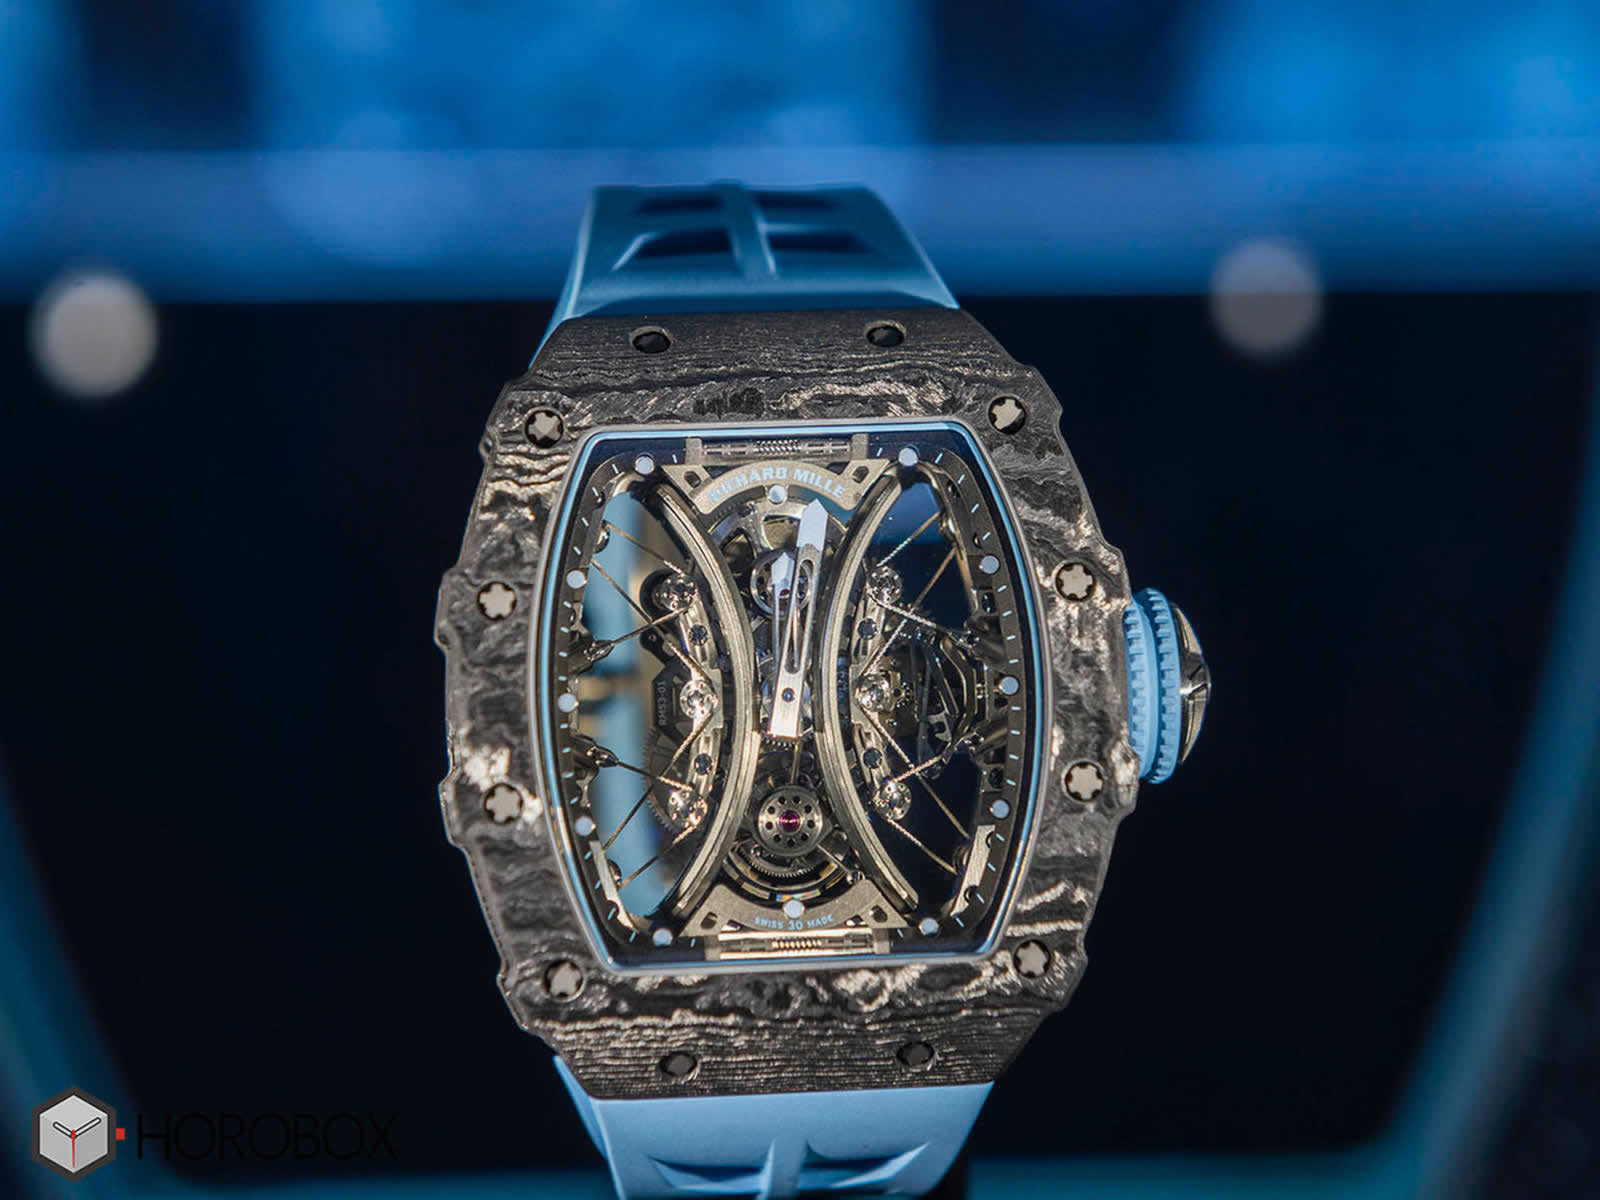 richard-mille-rm-53-01-pablo-mac-donough-.jpg